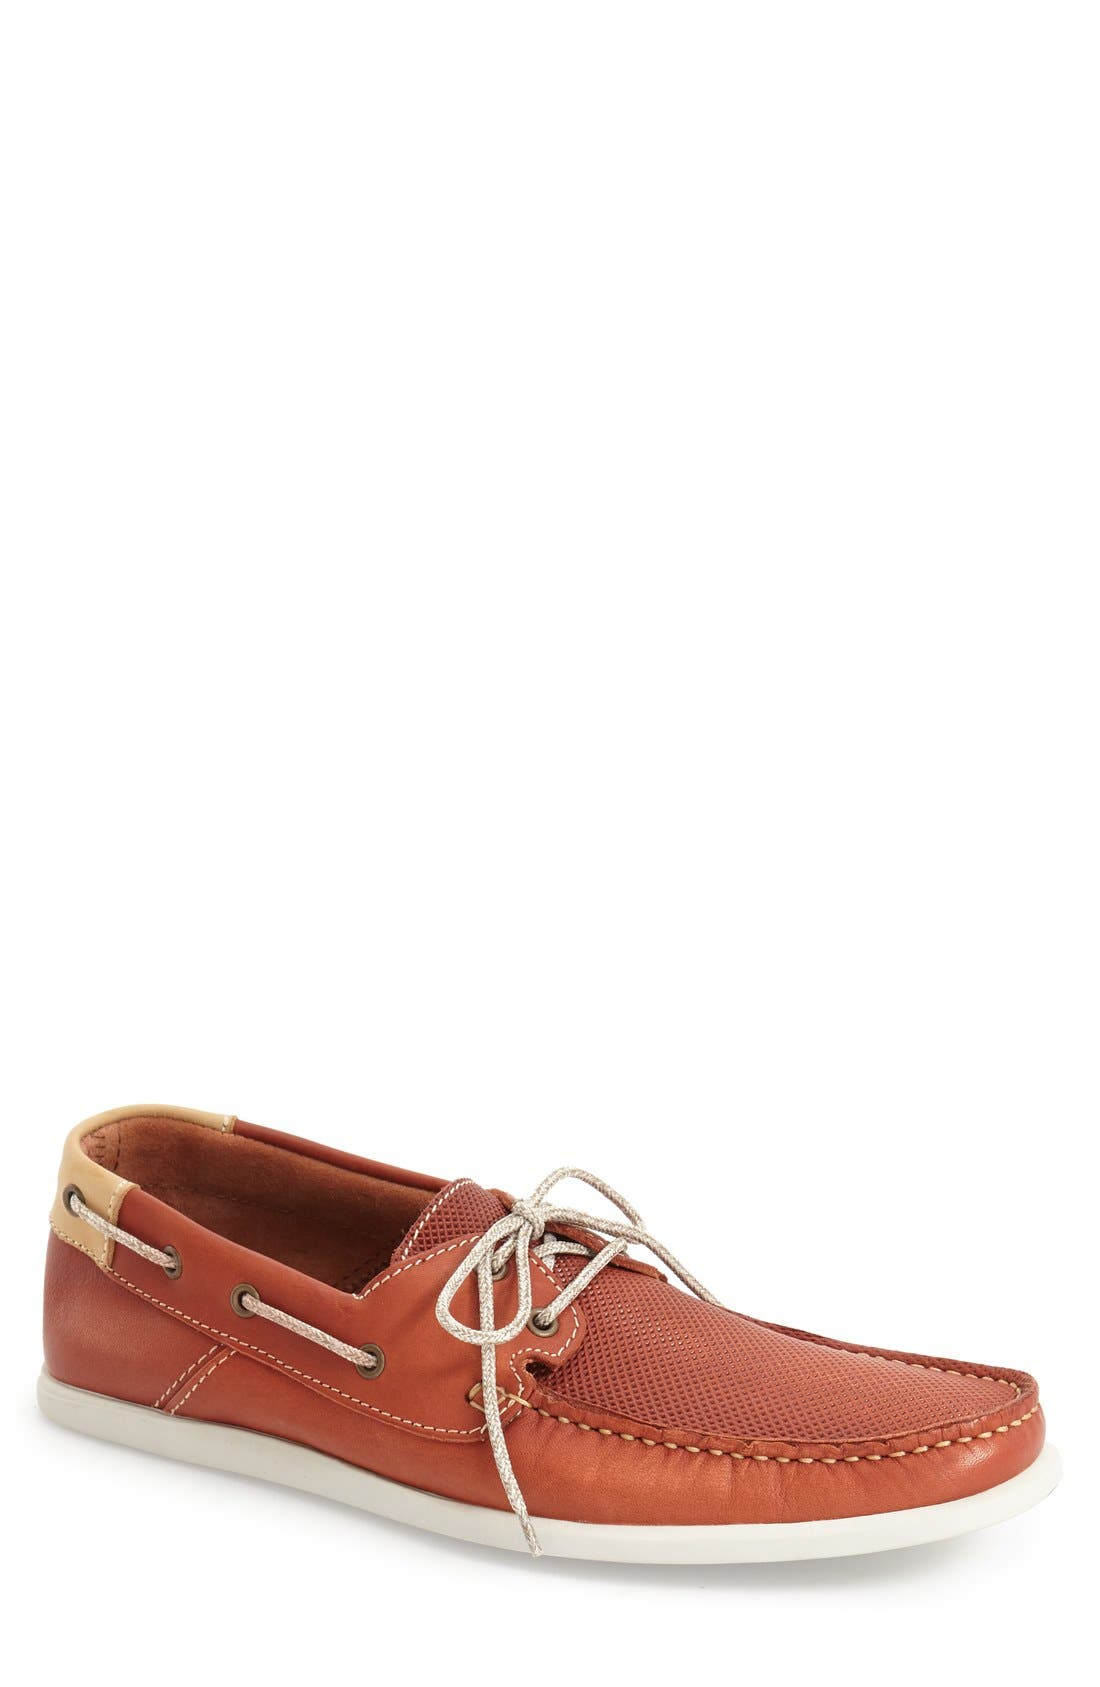 KENNETH COLE NEW YORK 'New Era' Boat Shoe